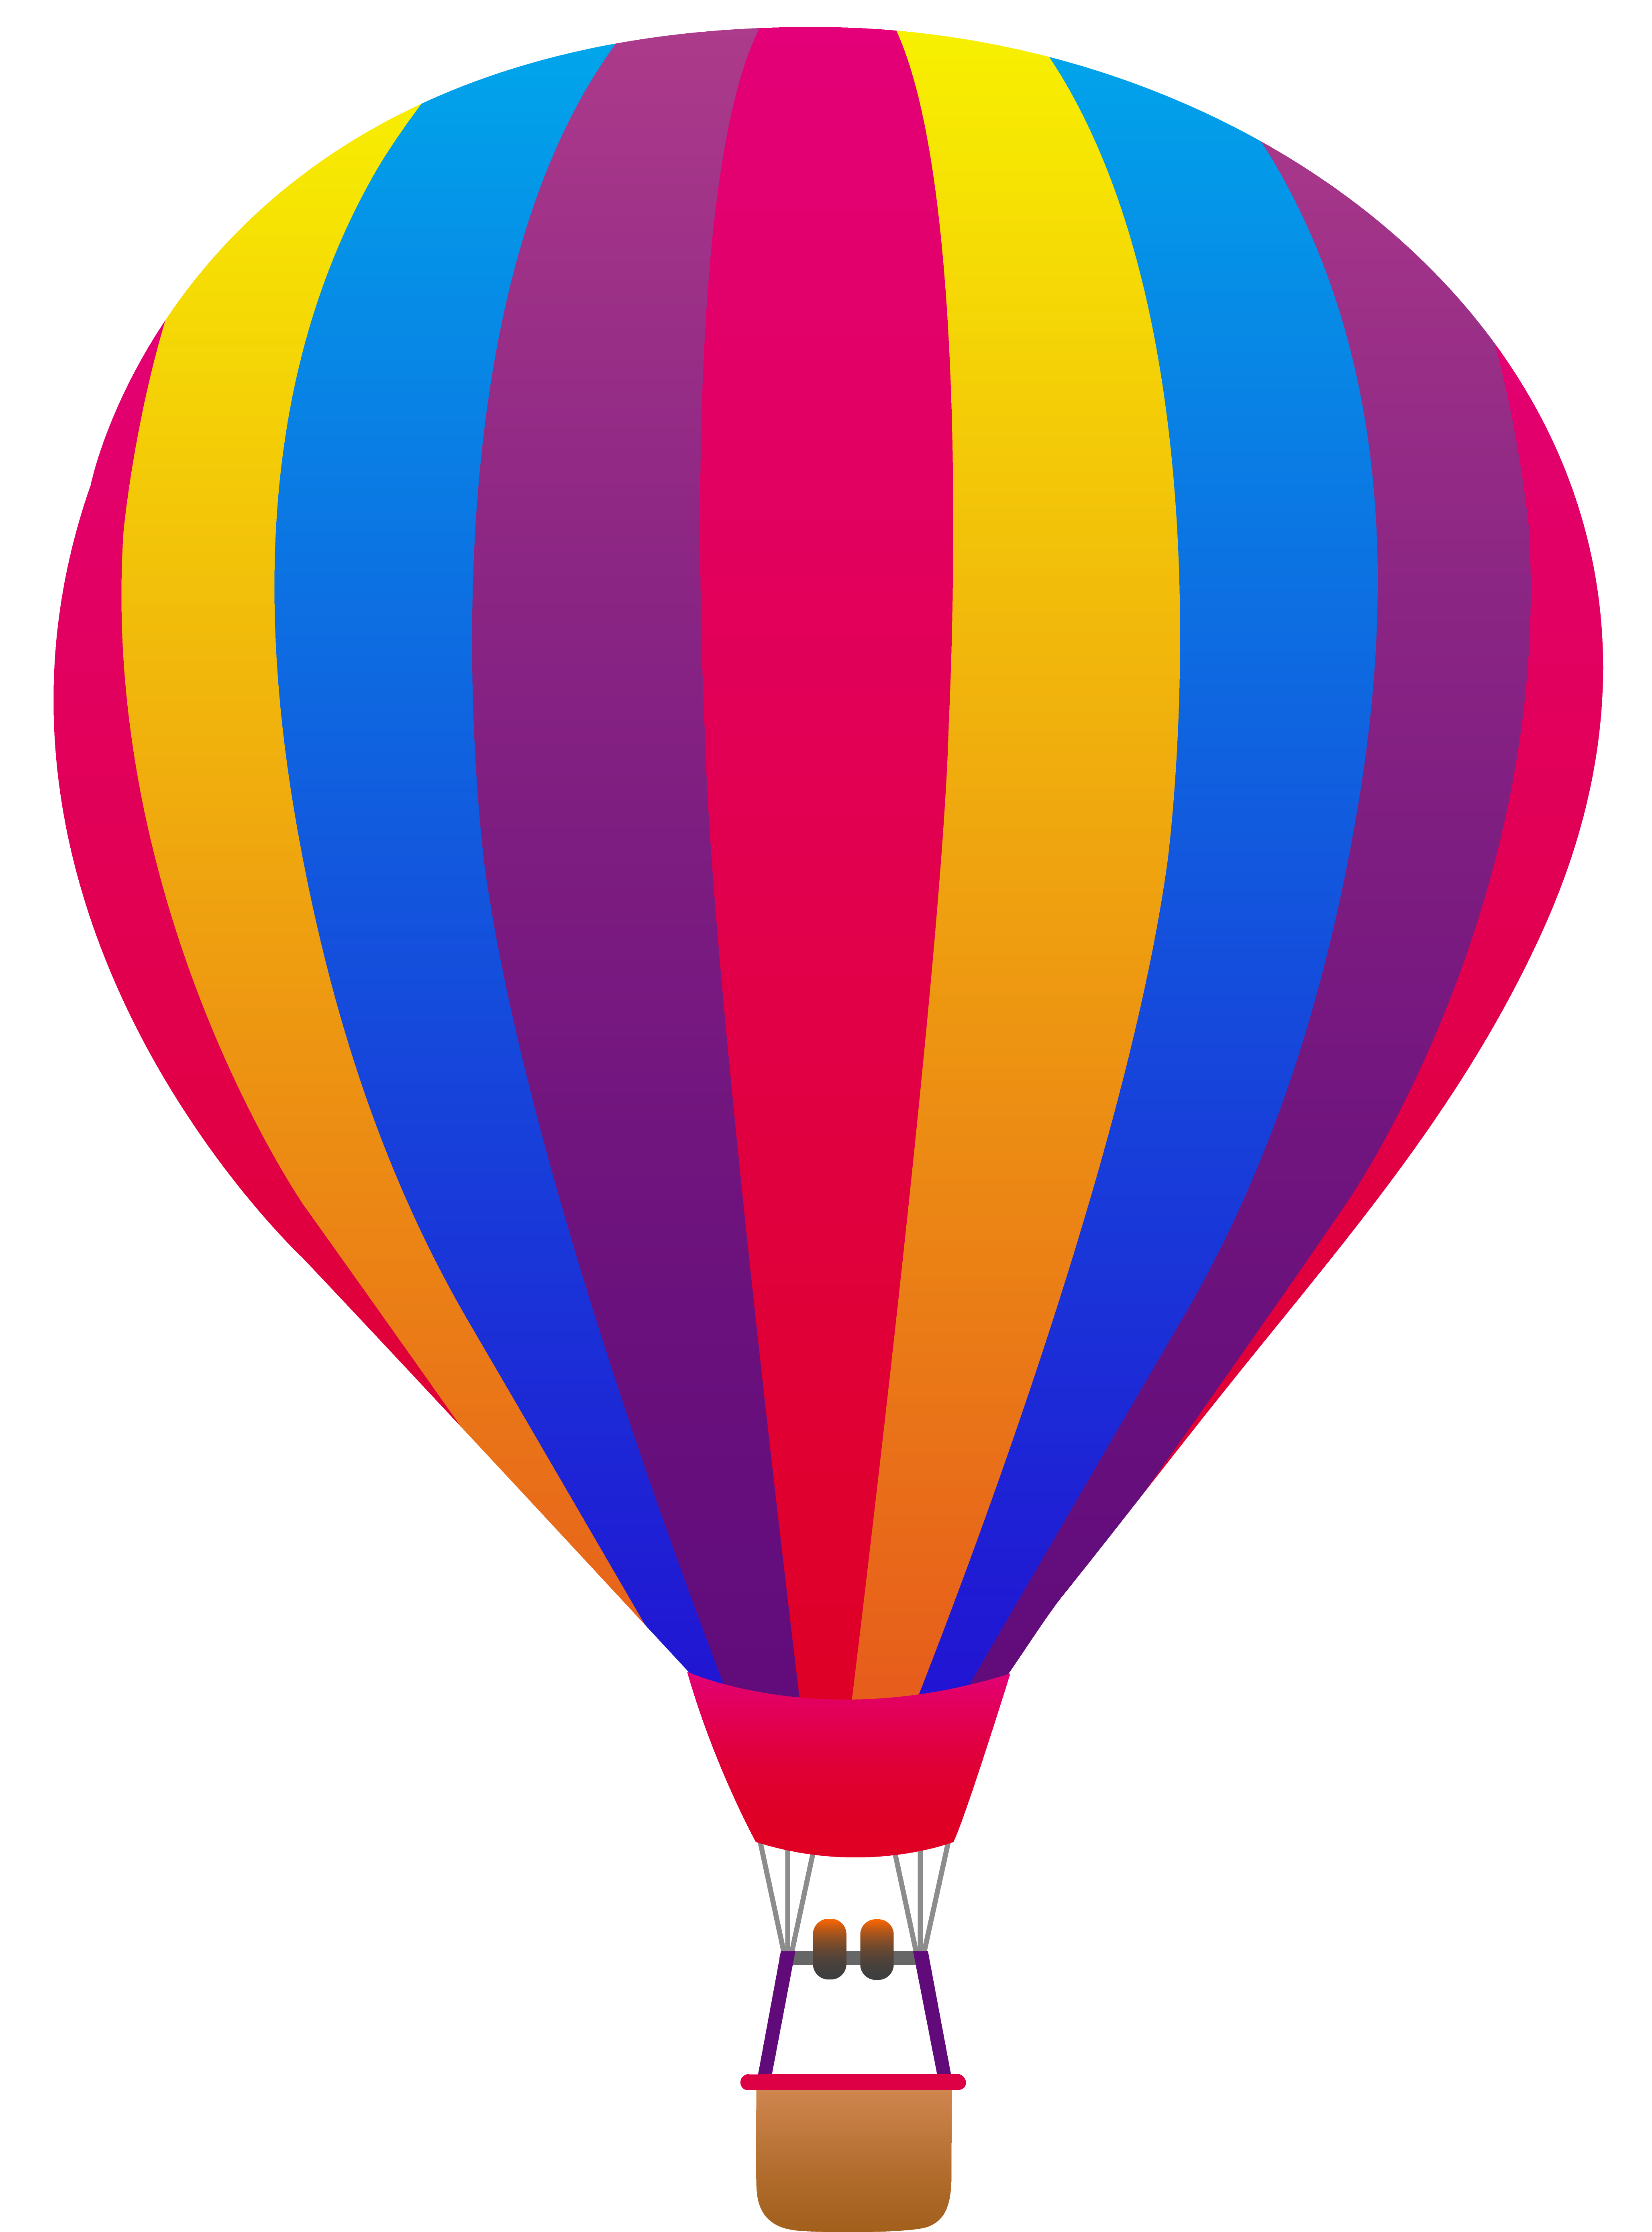 Air Balloon Png Transparent Background image #46765